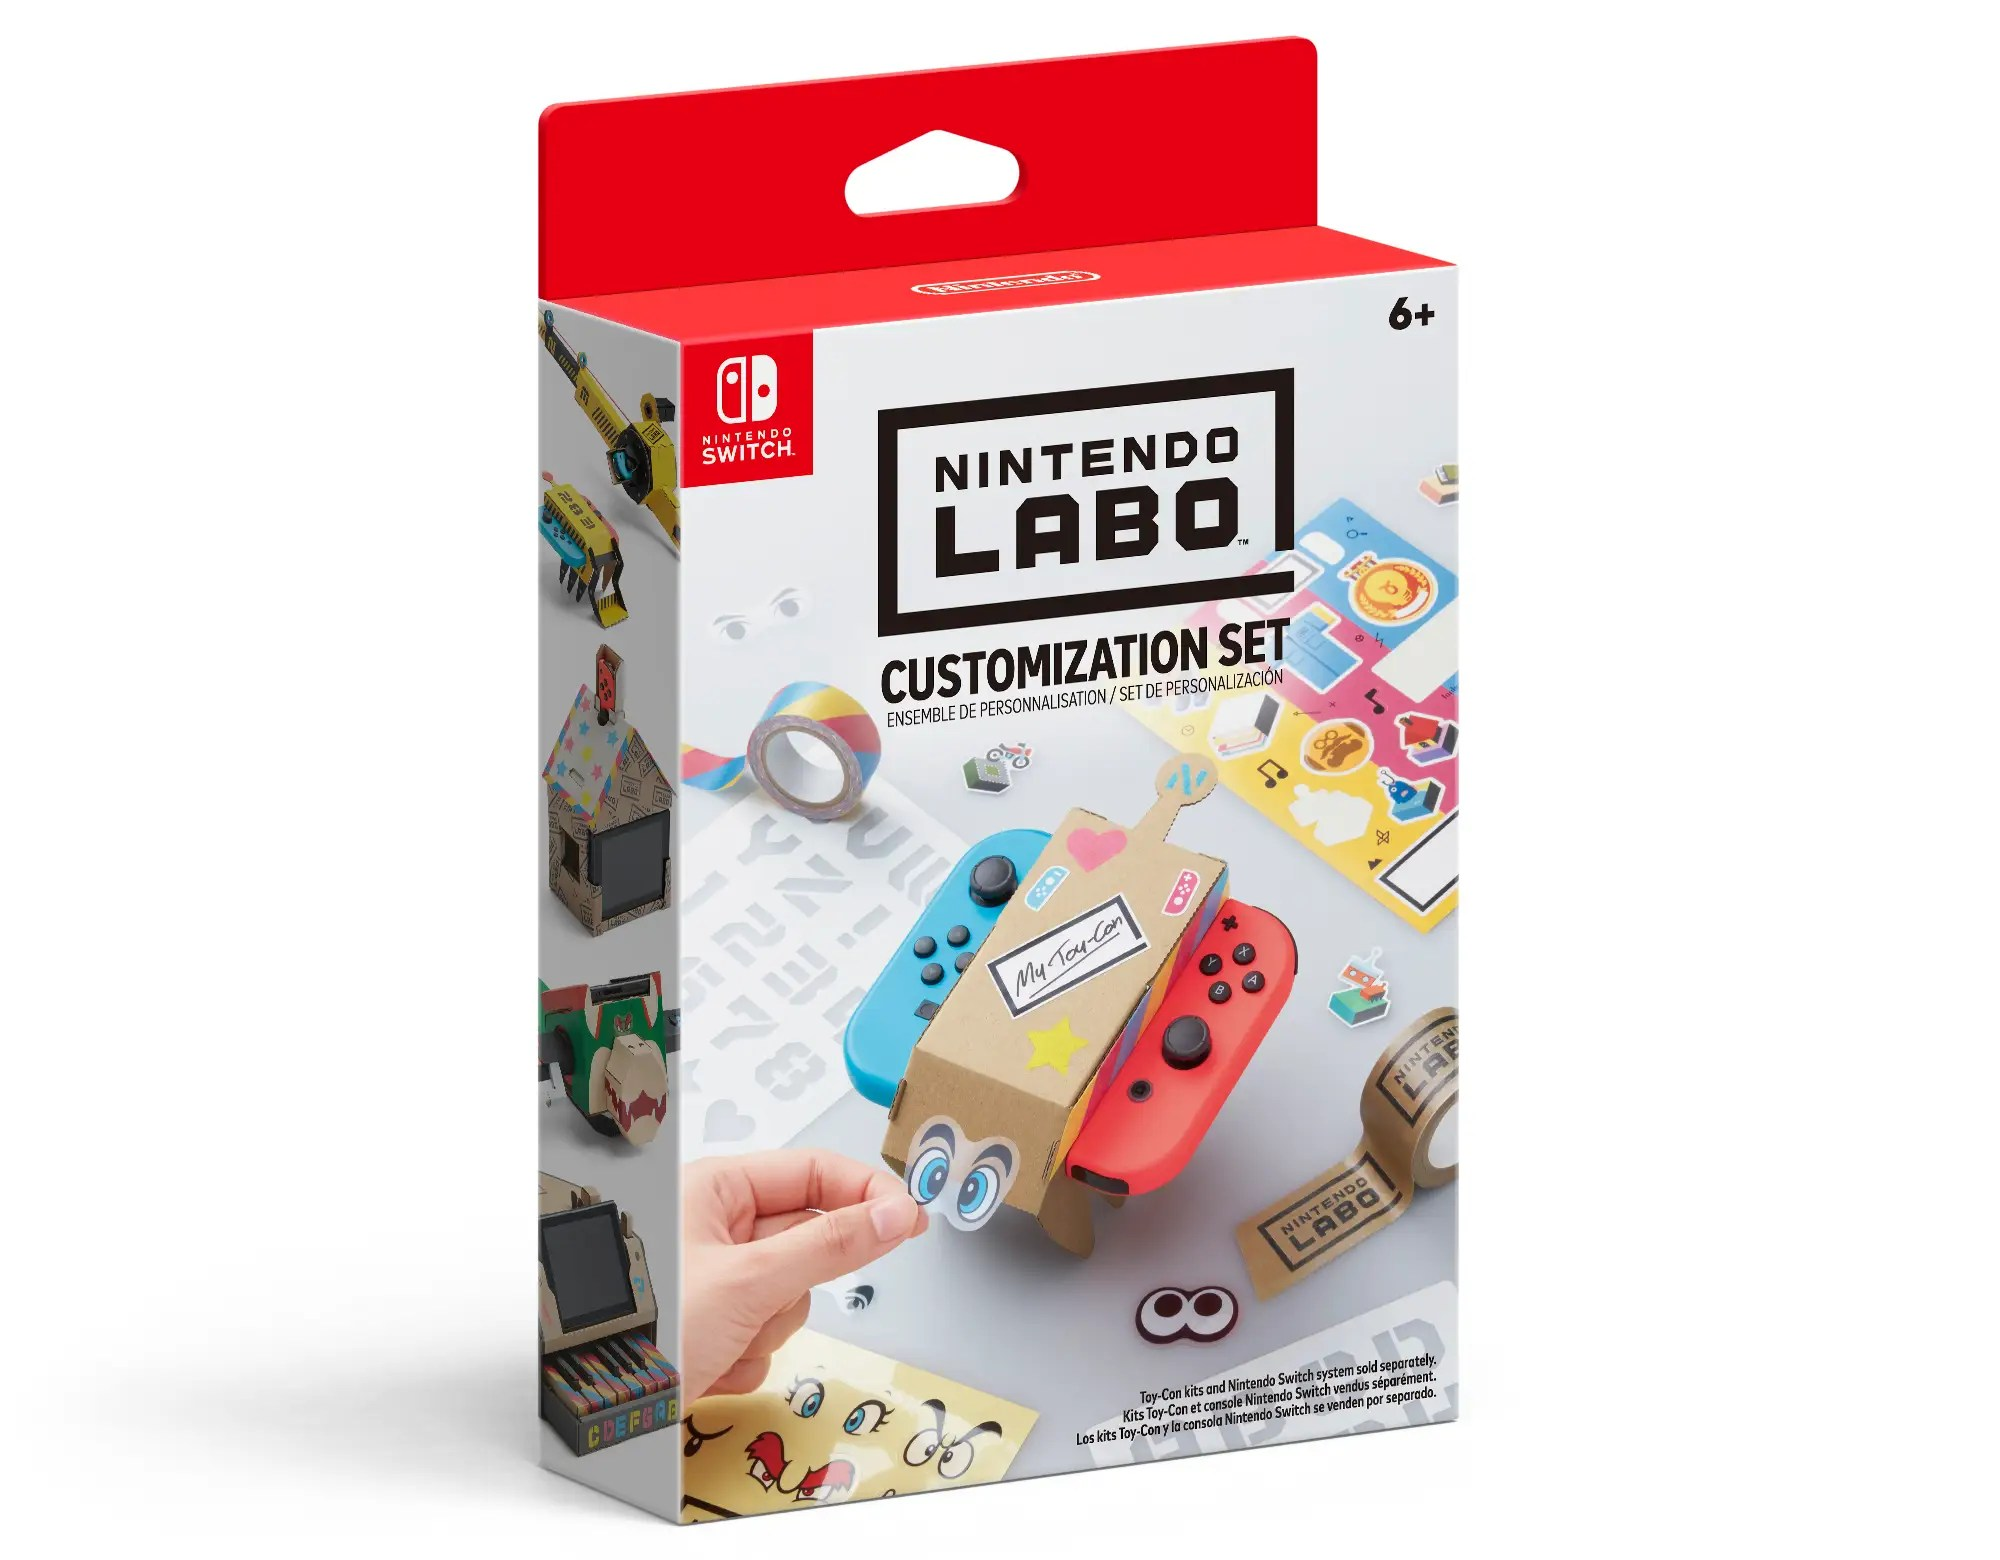 And yes, of course, you can customize your Labo. You could always just straight up draw on it with pen, crayon, pencil, or whatever else. But if you want something a bit more fancy, Nintendo's selling customization sets for $9.99.